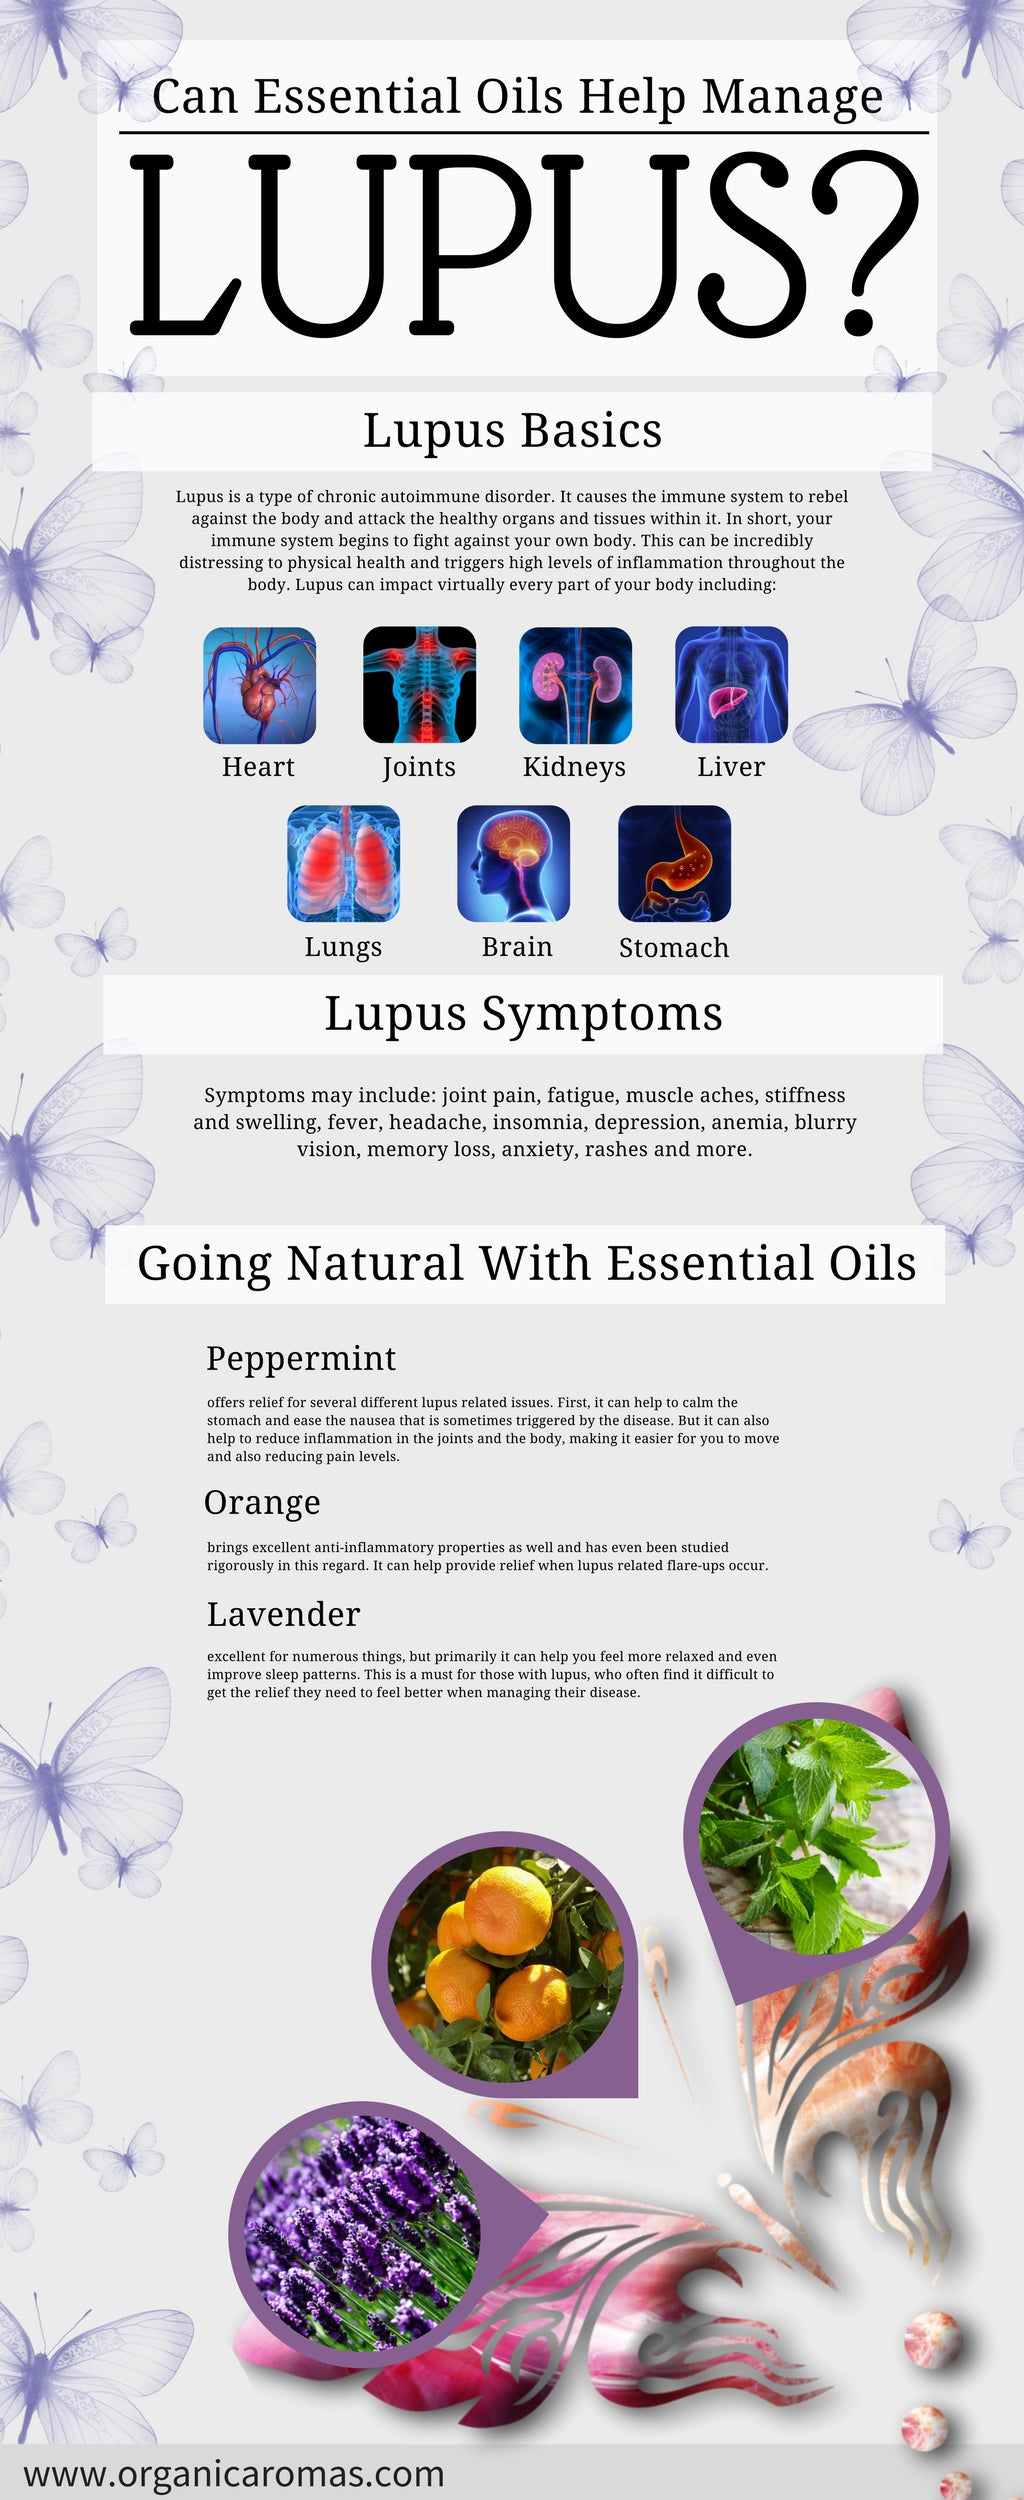 Can Essential Oils Help Manage Lupus? Info-graphic